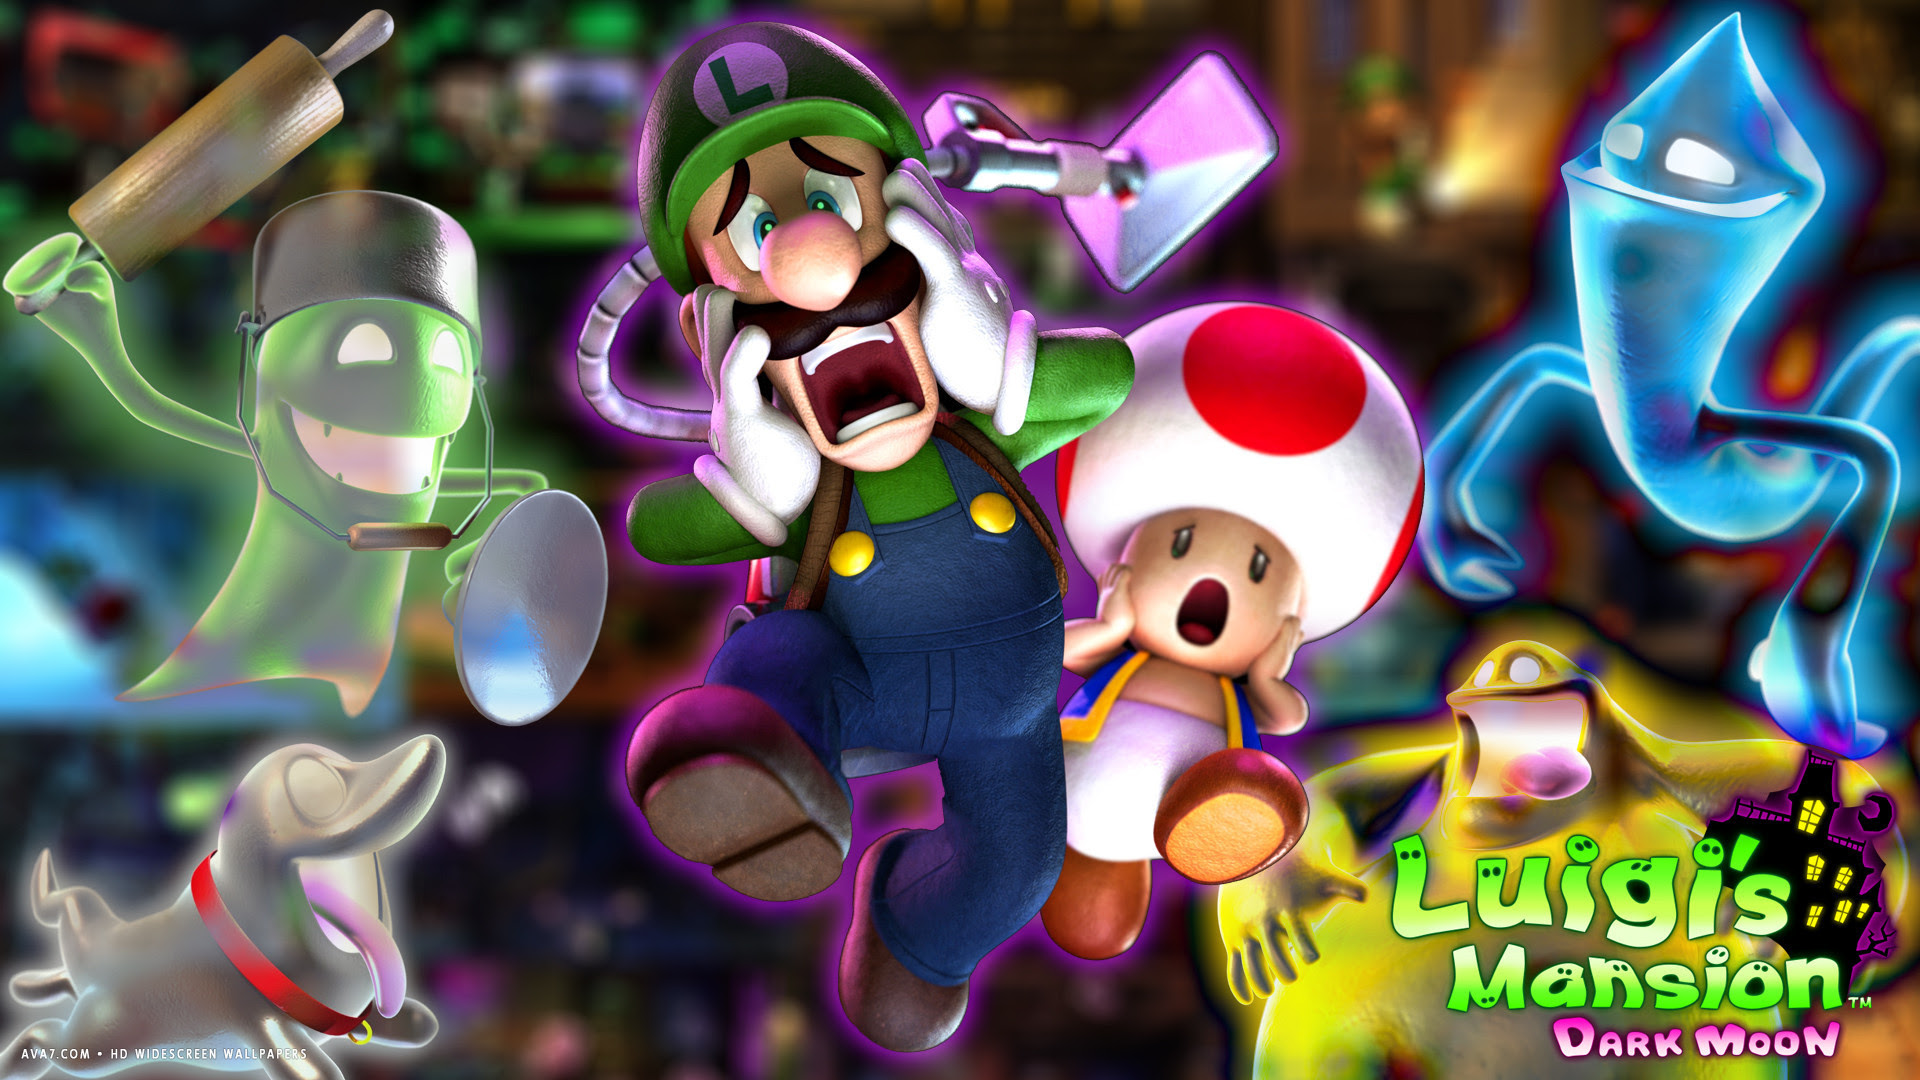 Luigis Mansion 2 Game Dark Moon Hd Widescreen Wallpaper Games